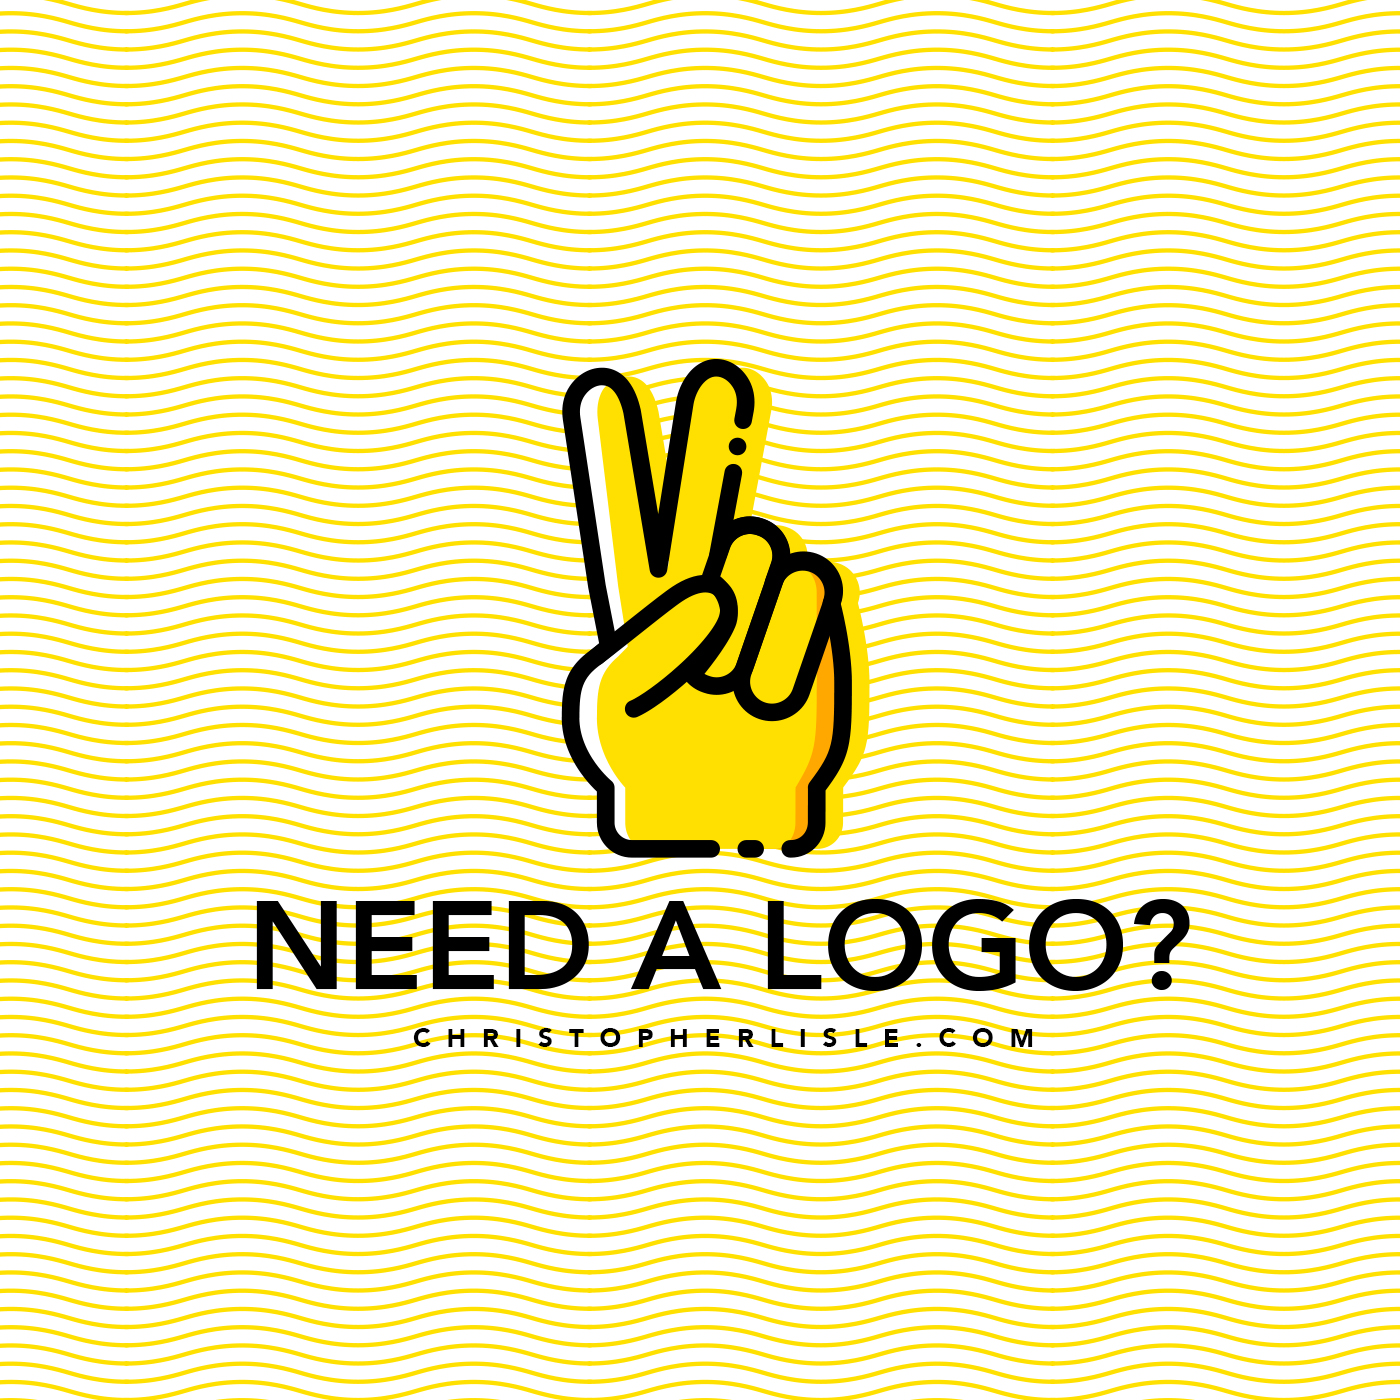 Need a logo news for Need a logo created